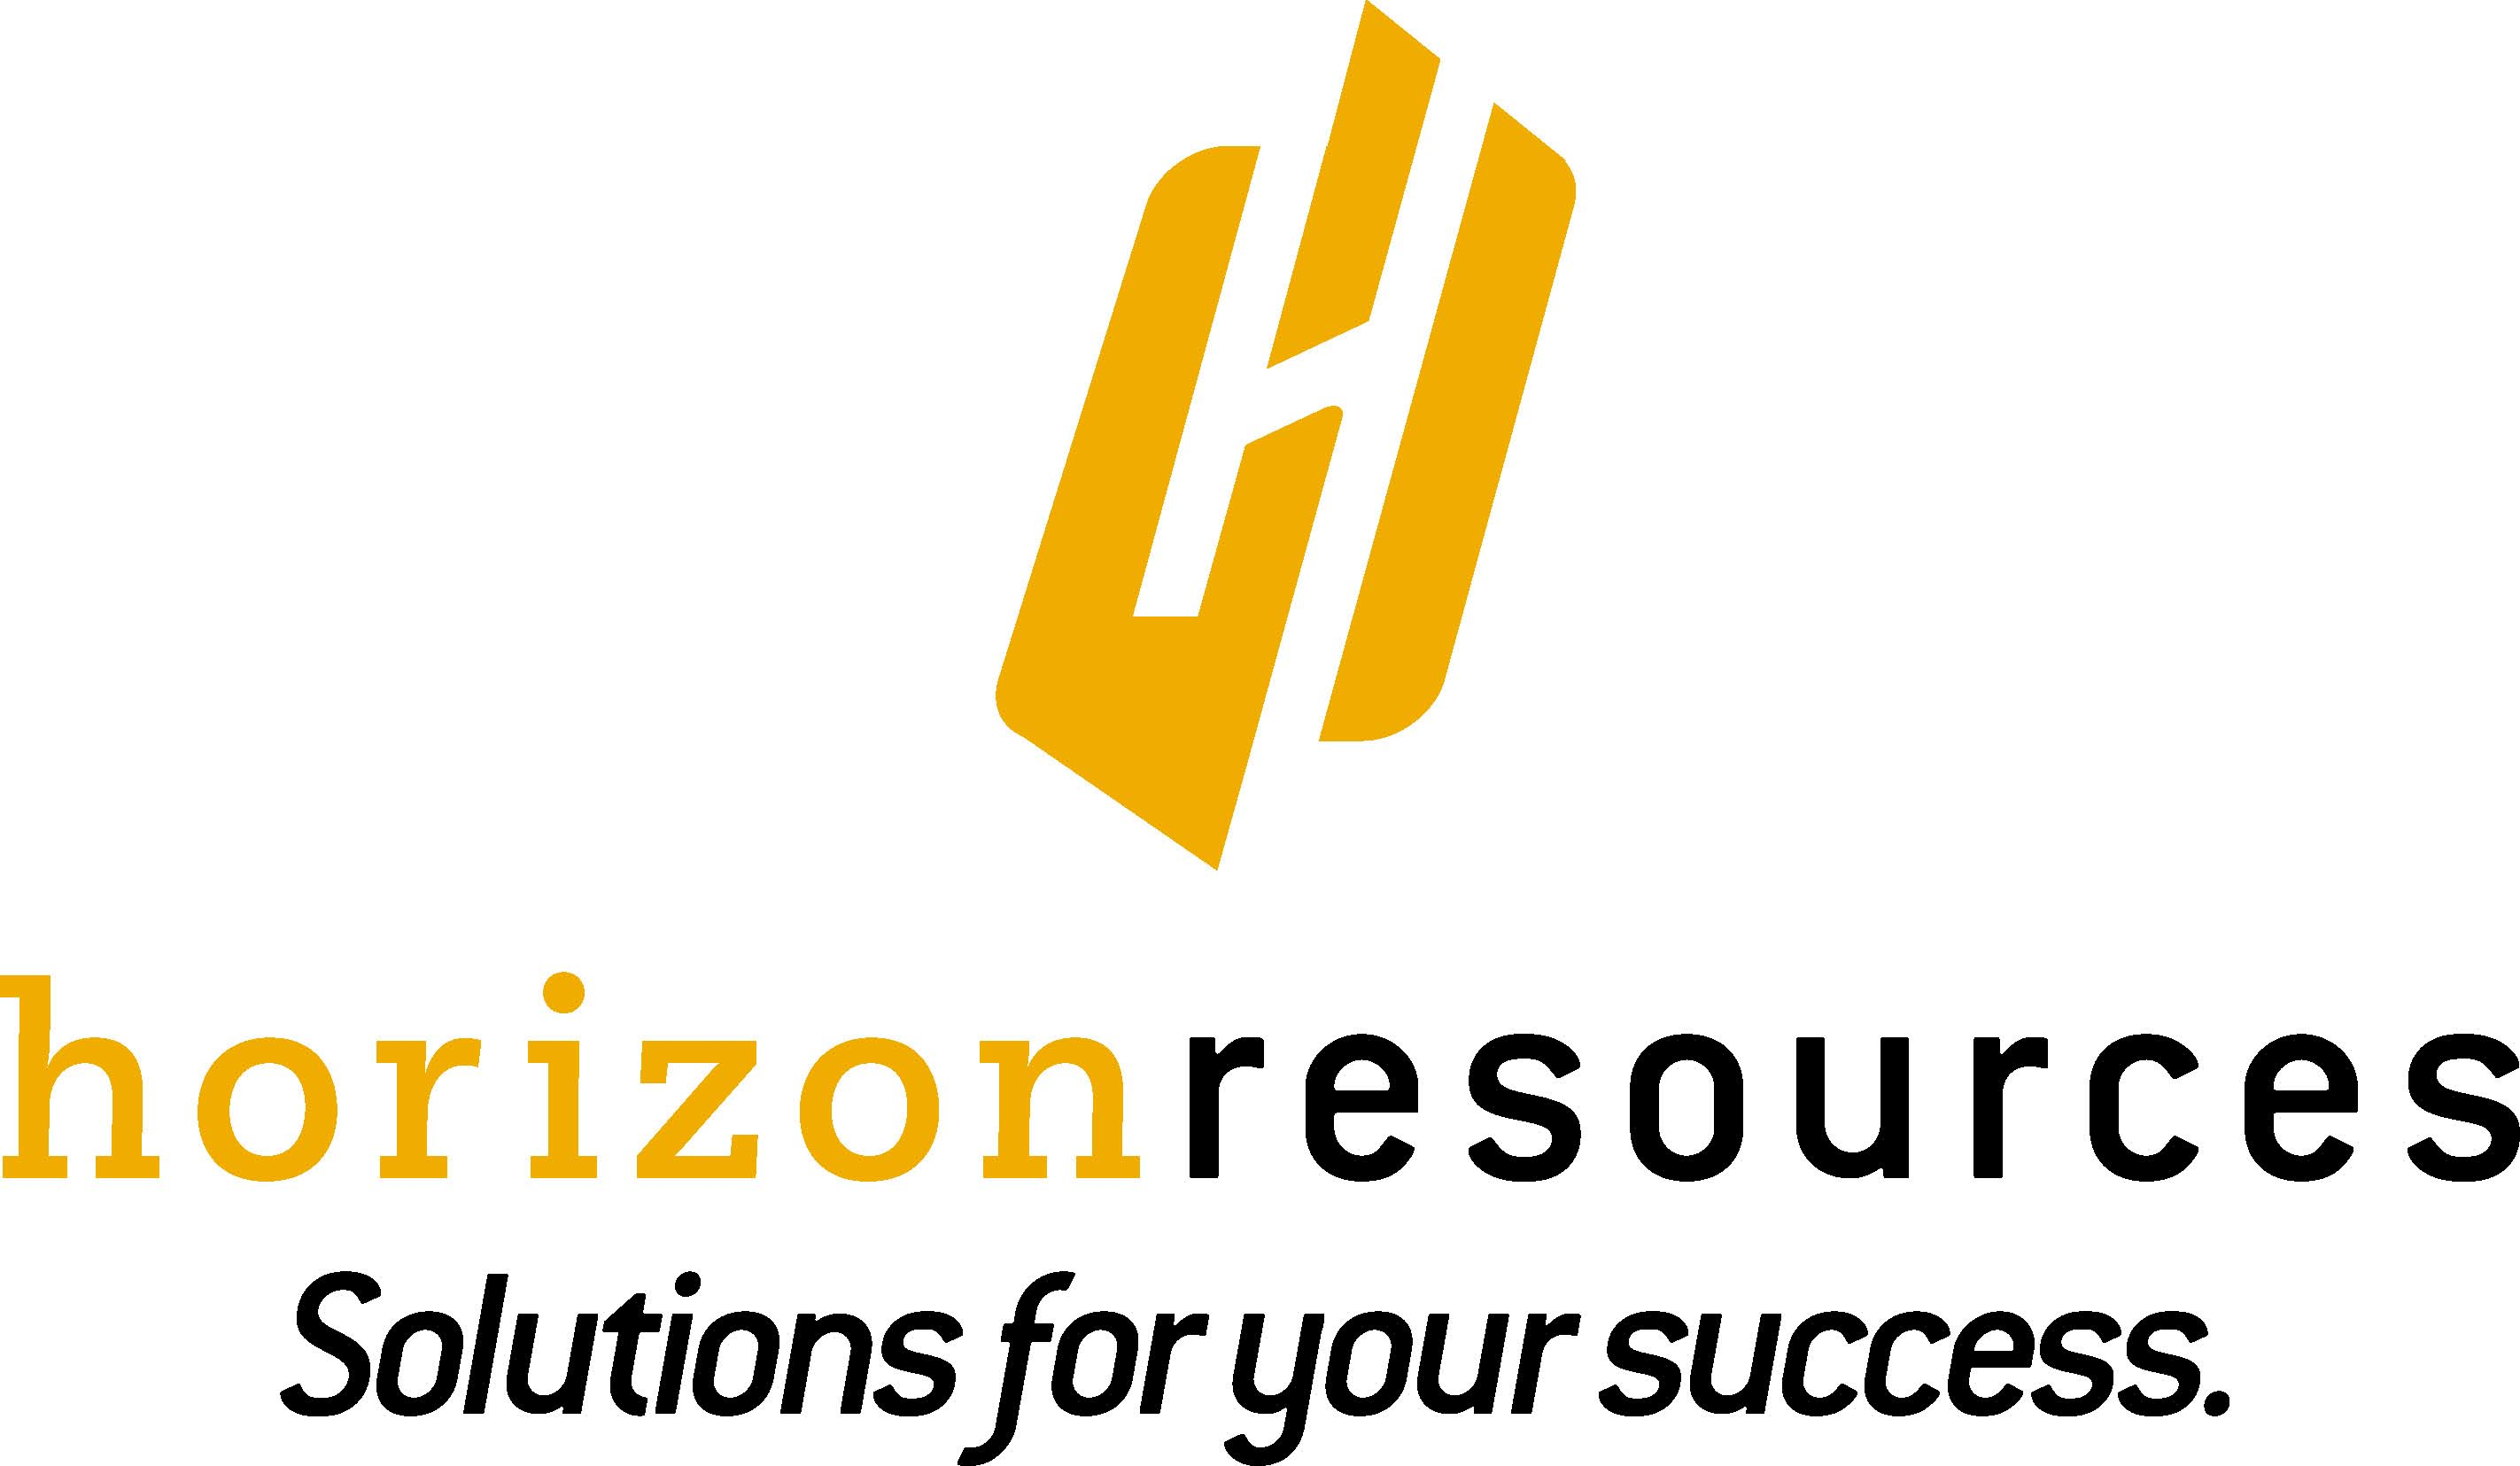 Horizon Resources